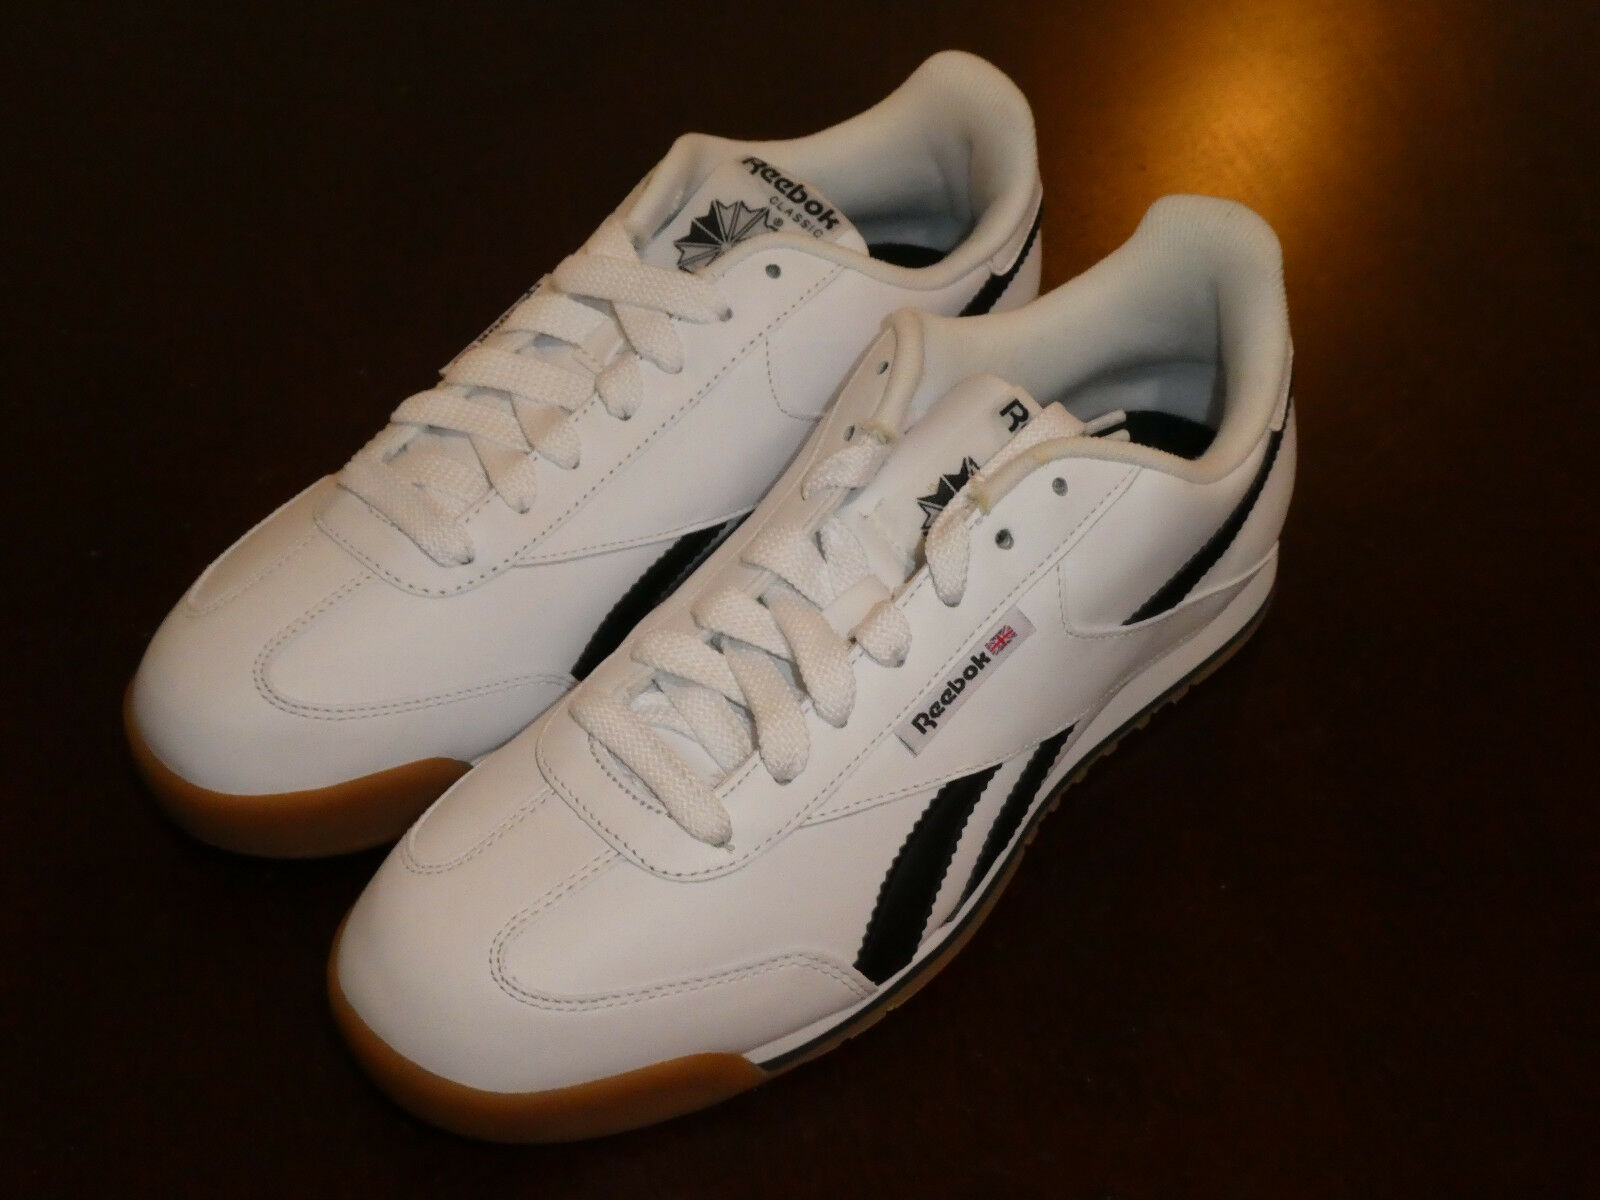 Reebok CL Supercourt Smooth schuhe J88184 Turnschuhe new Weiß gum Men's